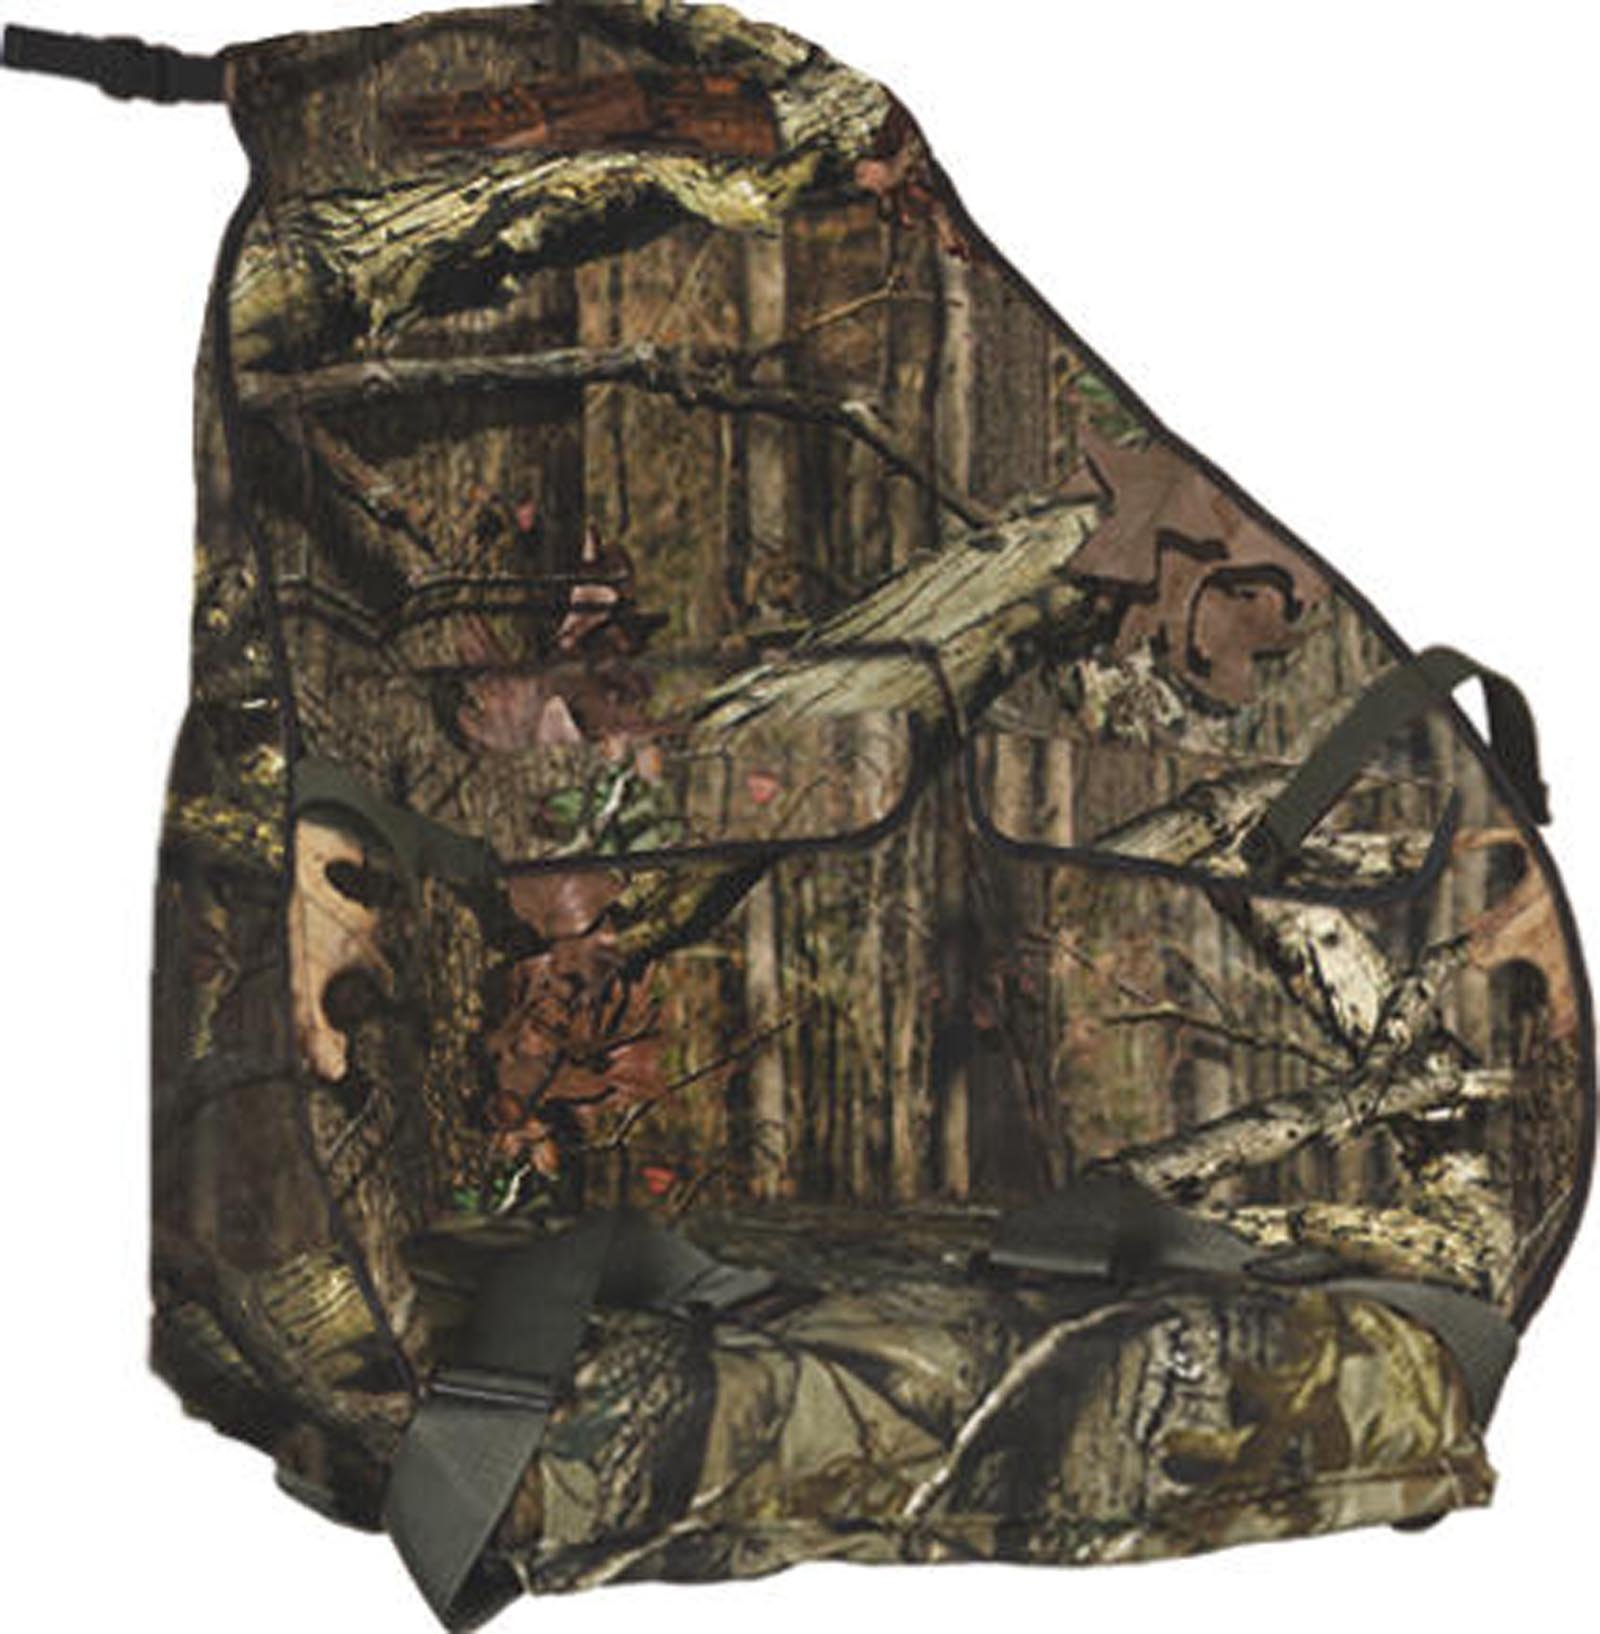 Summit Treestands Surround Seat, Realtree Camo